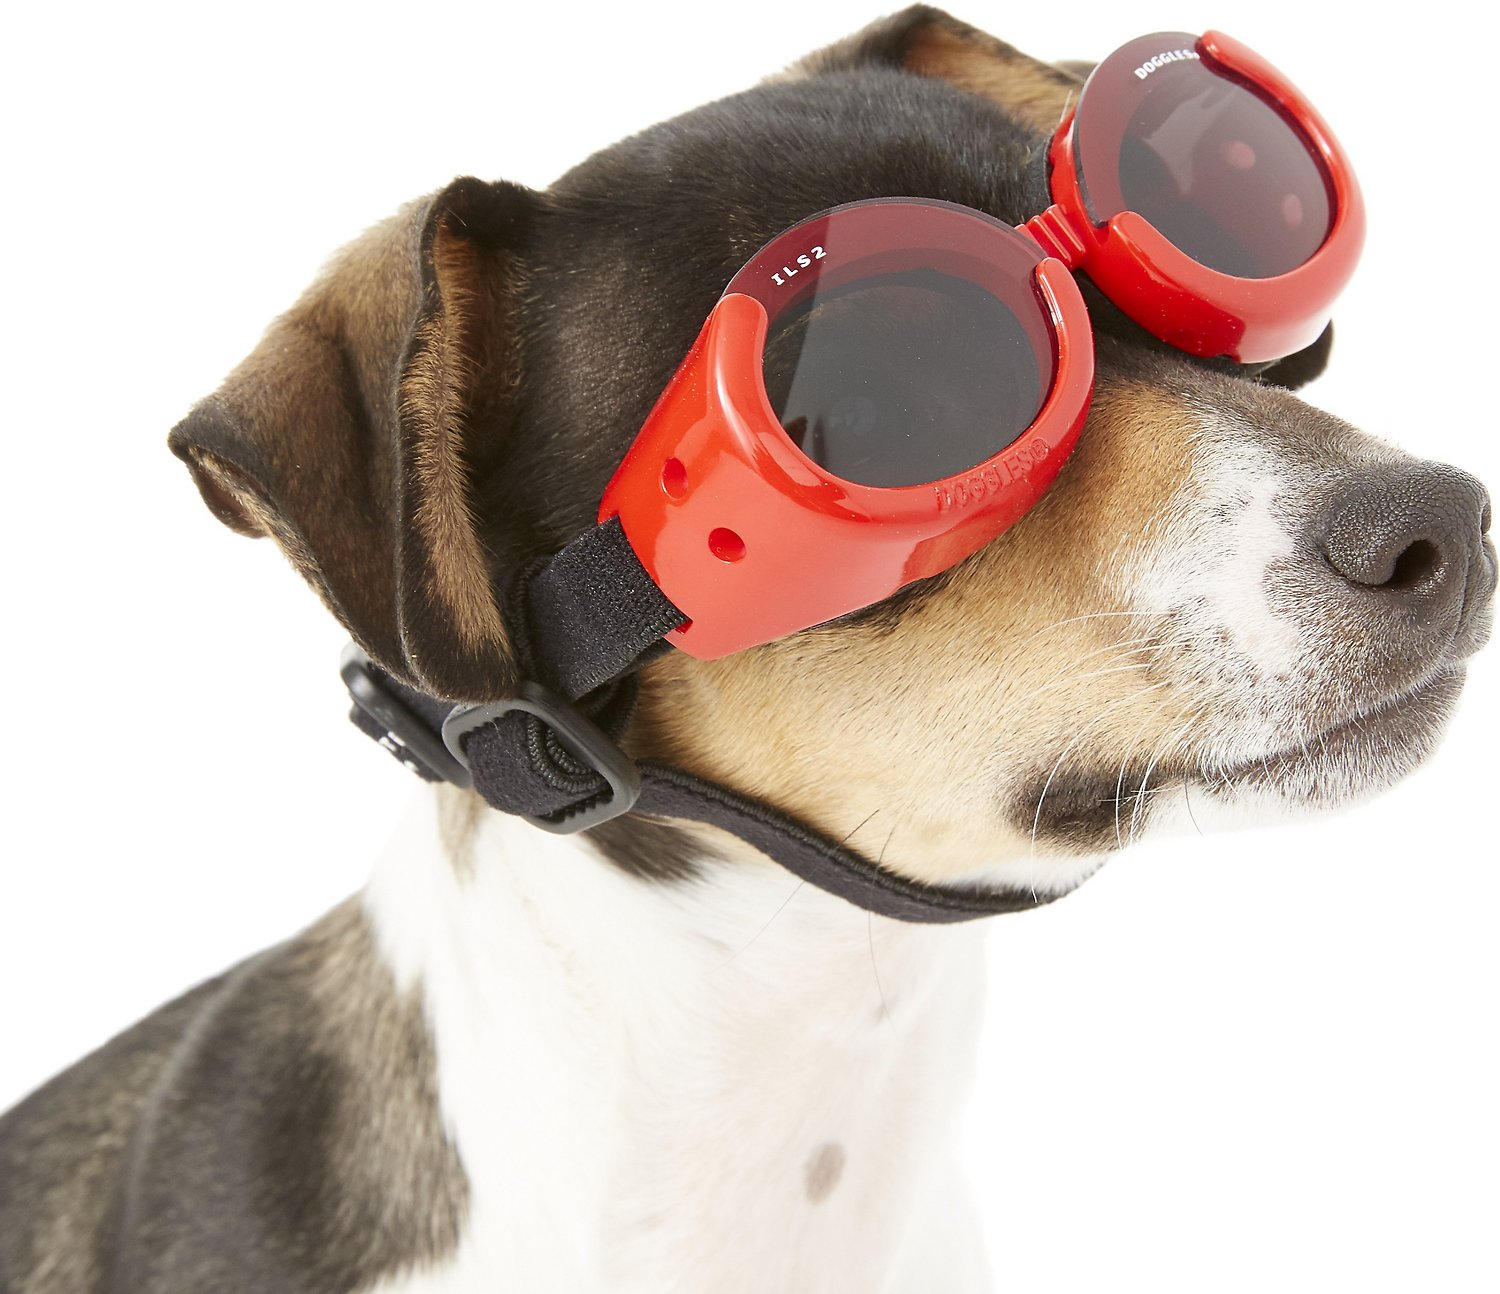 Doggles ILS Dog Goggles, Red, X-Small - Chewy.com